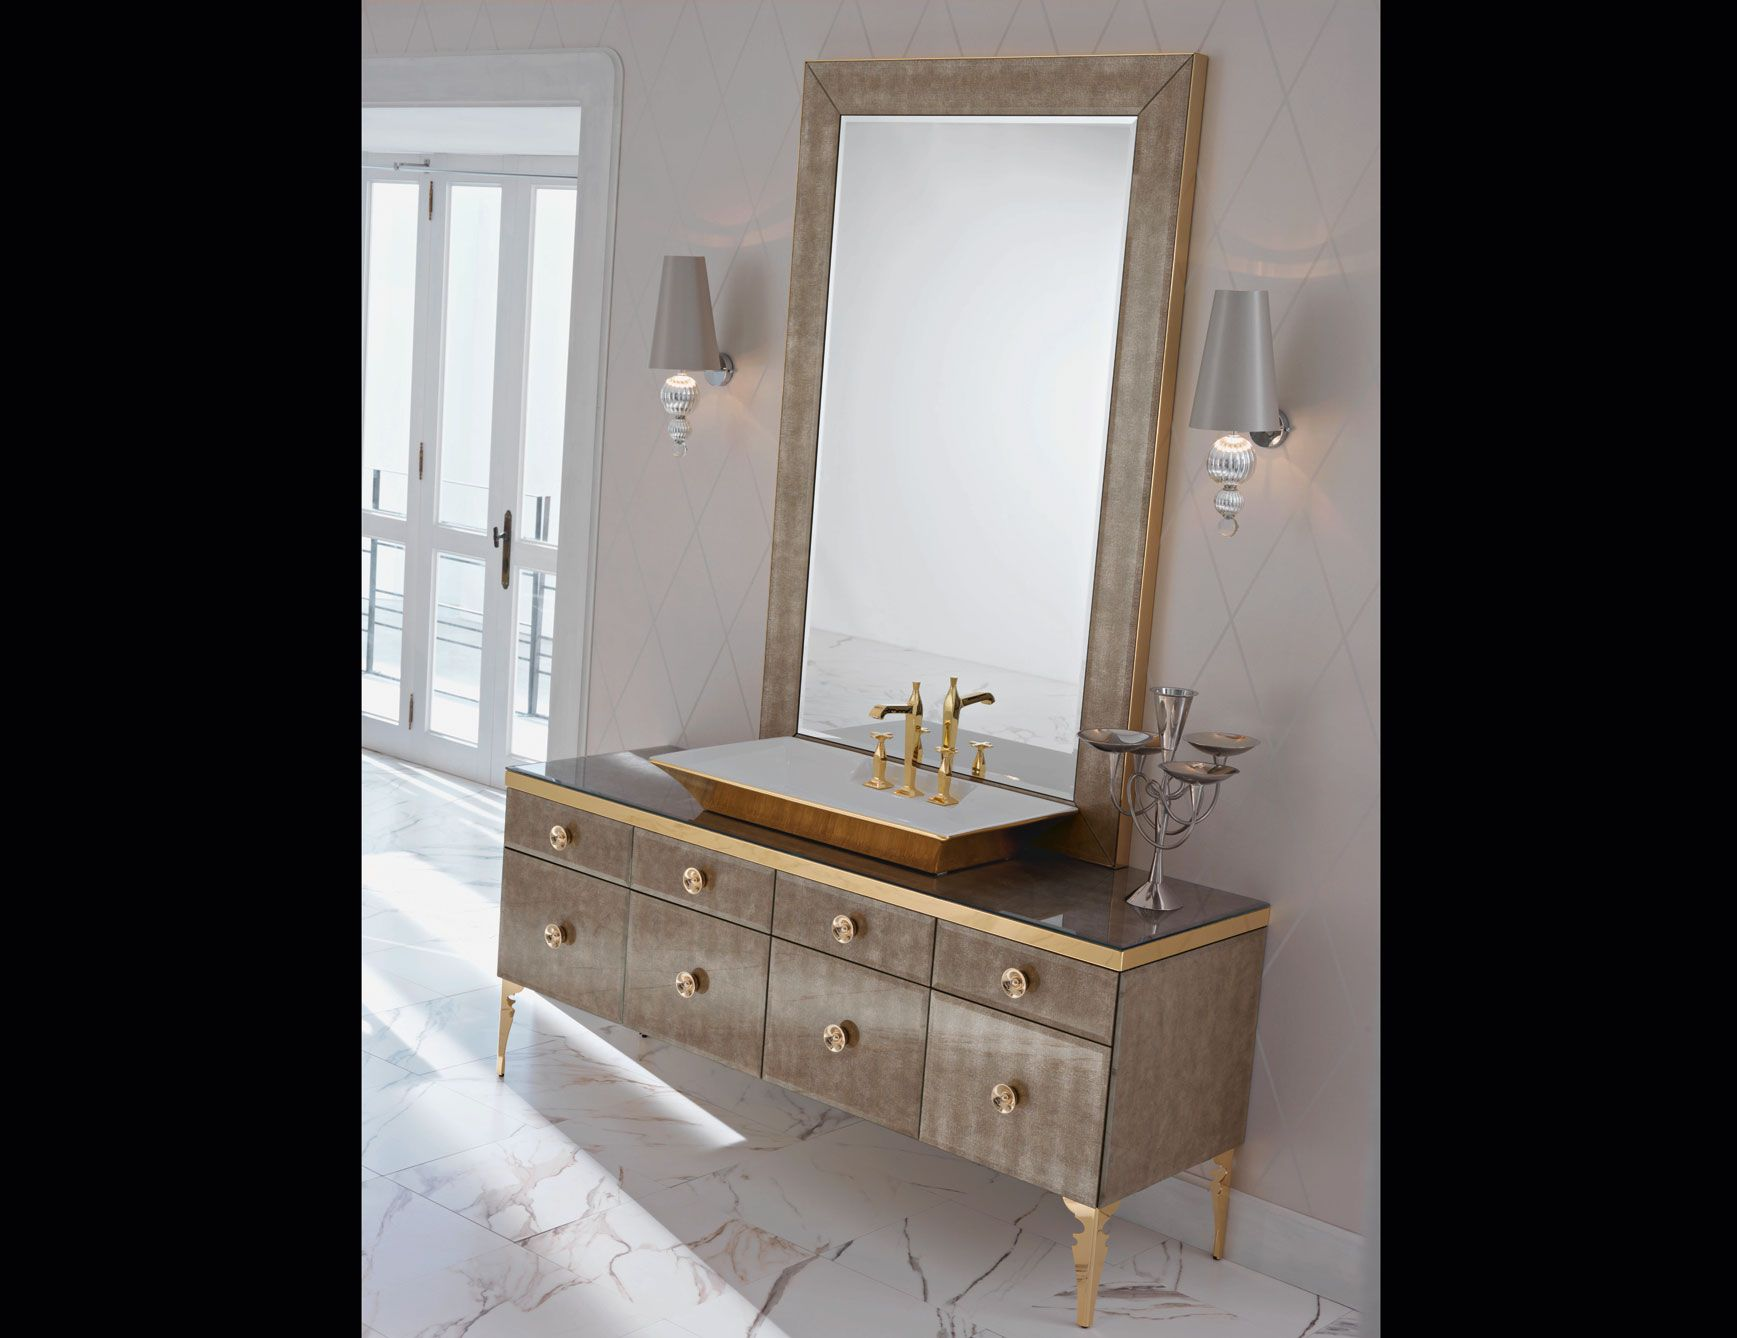 High End Italian Bathroom Vanity Shown In Lacquered Bronze Glass In A 70 9 Quot Width Counter Top In Glass With Monoblock Washbasin And 4 Lower Pull Out Drawe